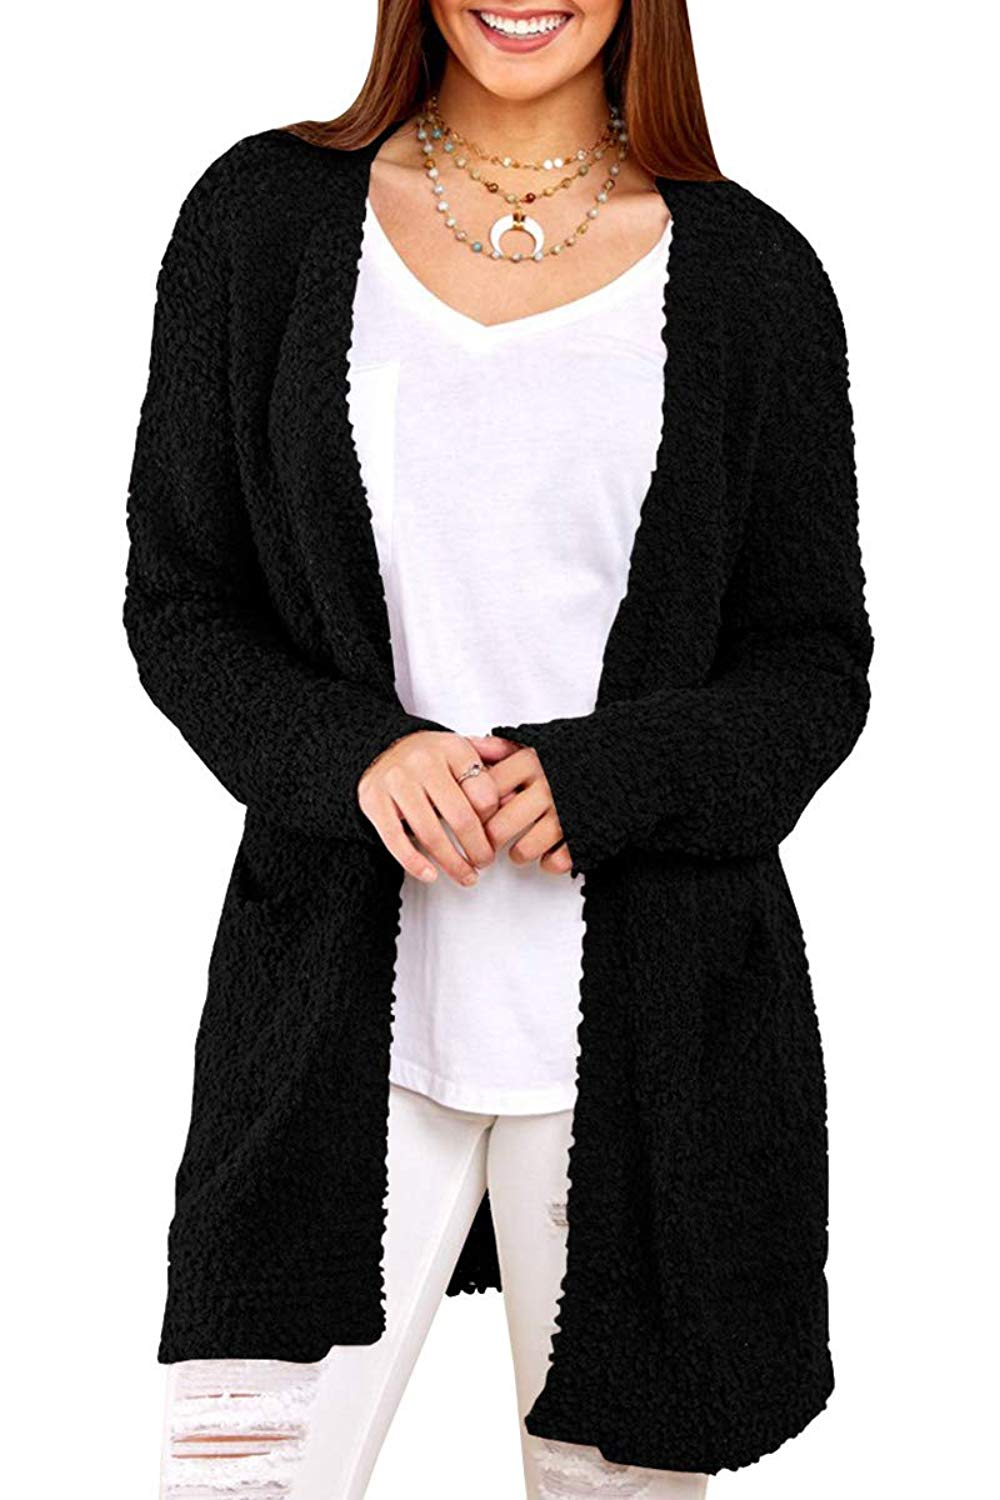 b5a6fabee1 Get Quotations · EastLife Womens Cardigans Sweaters Open Front Sherpa Long  Sleeve Sweater Coat Pockets